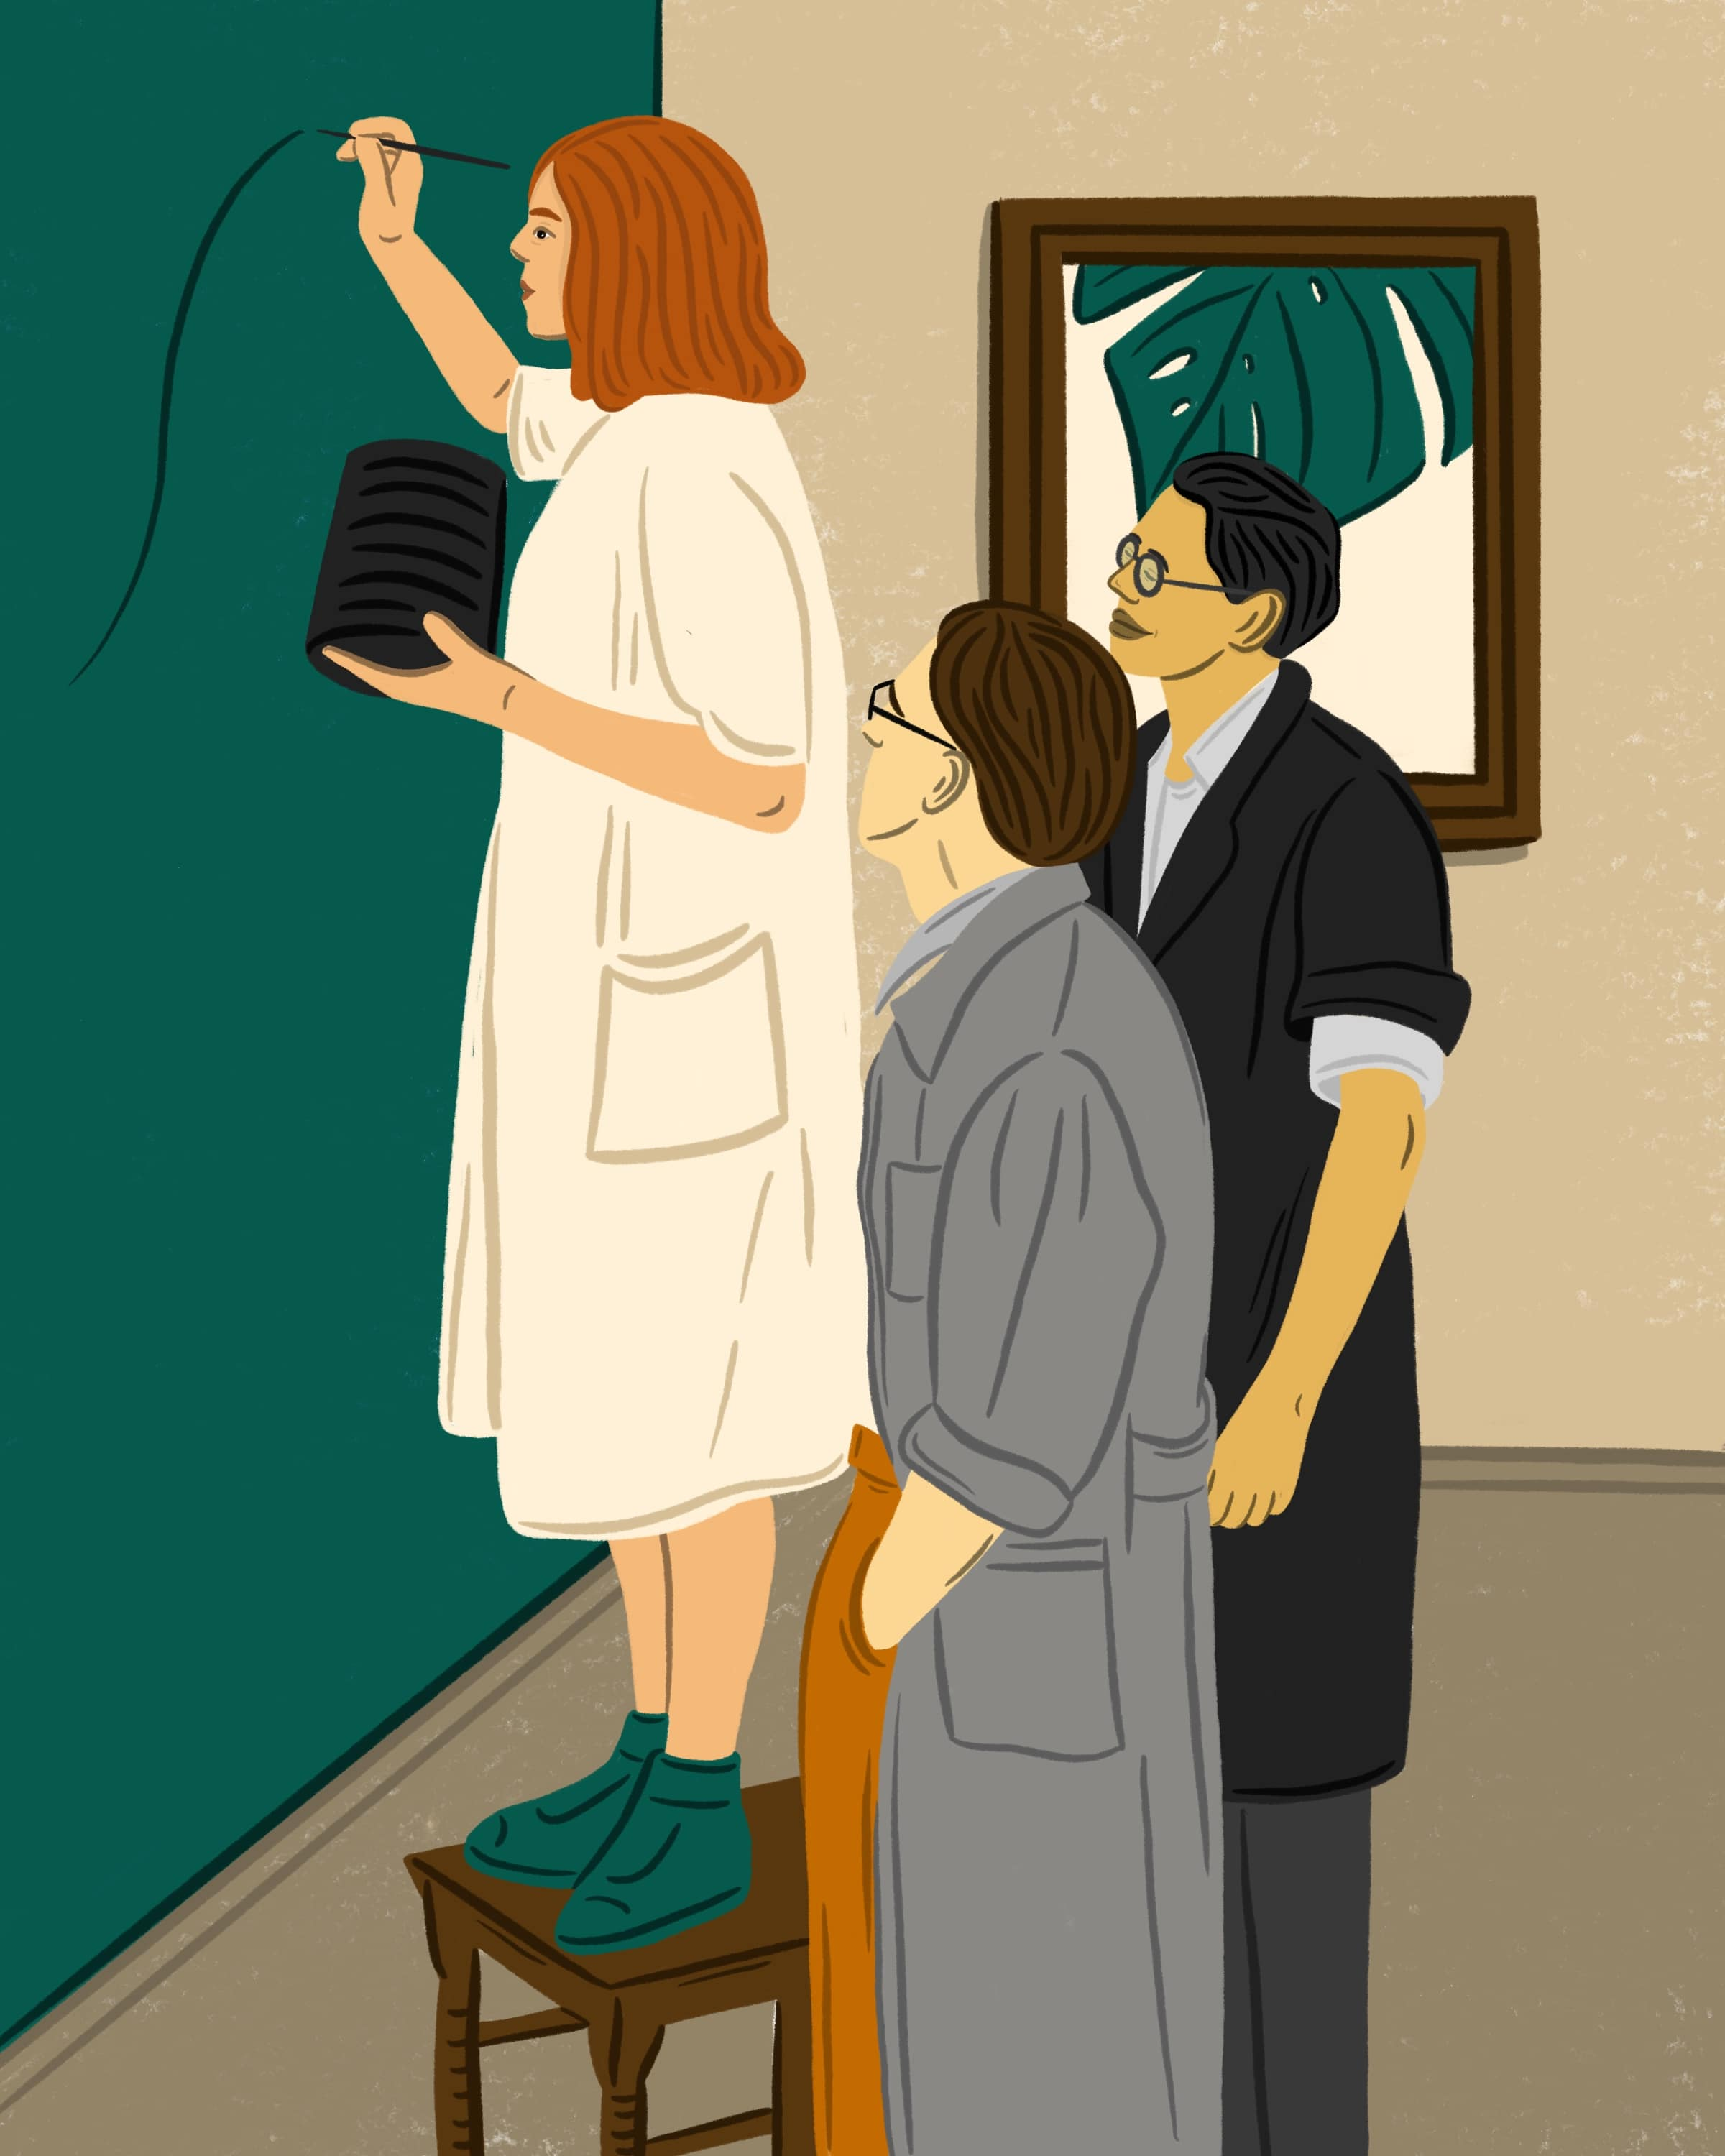 Illustration of a girl painting on a wall and two man standing behind her.